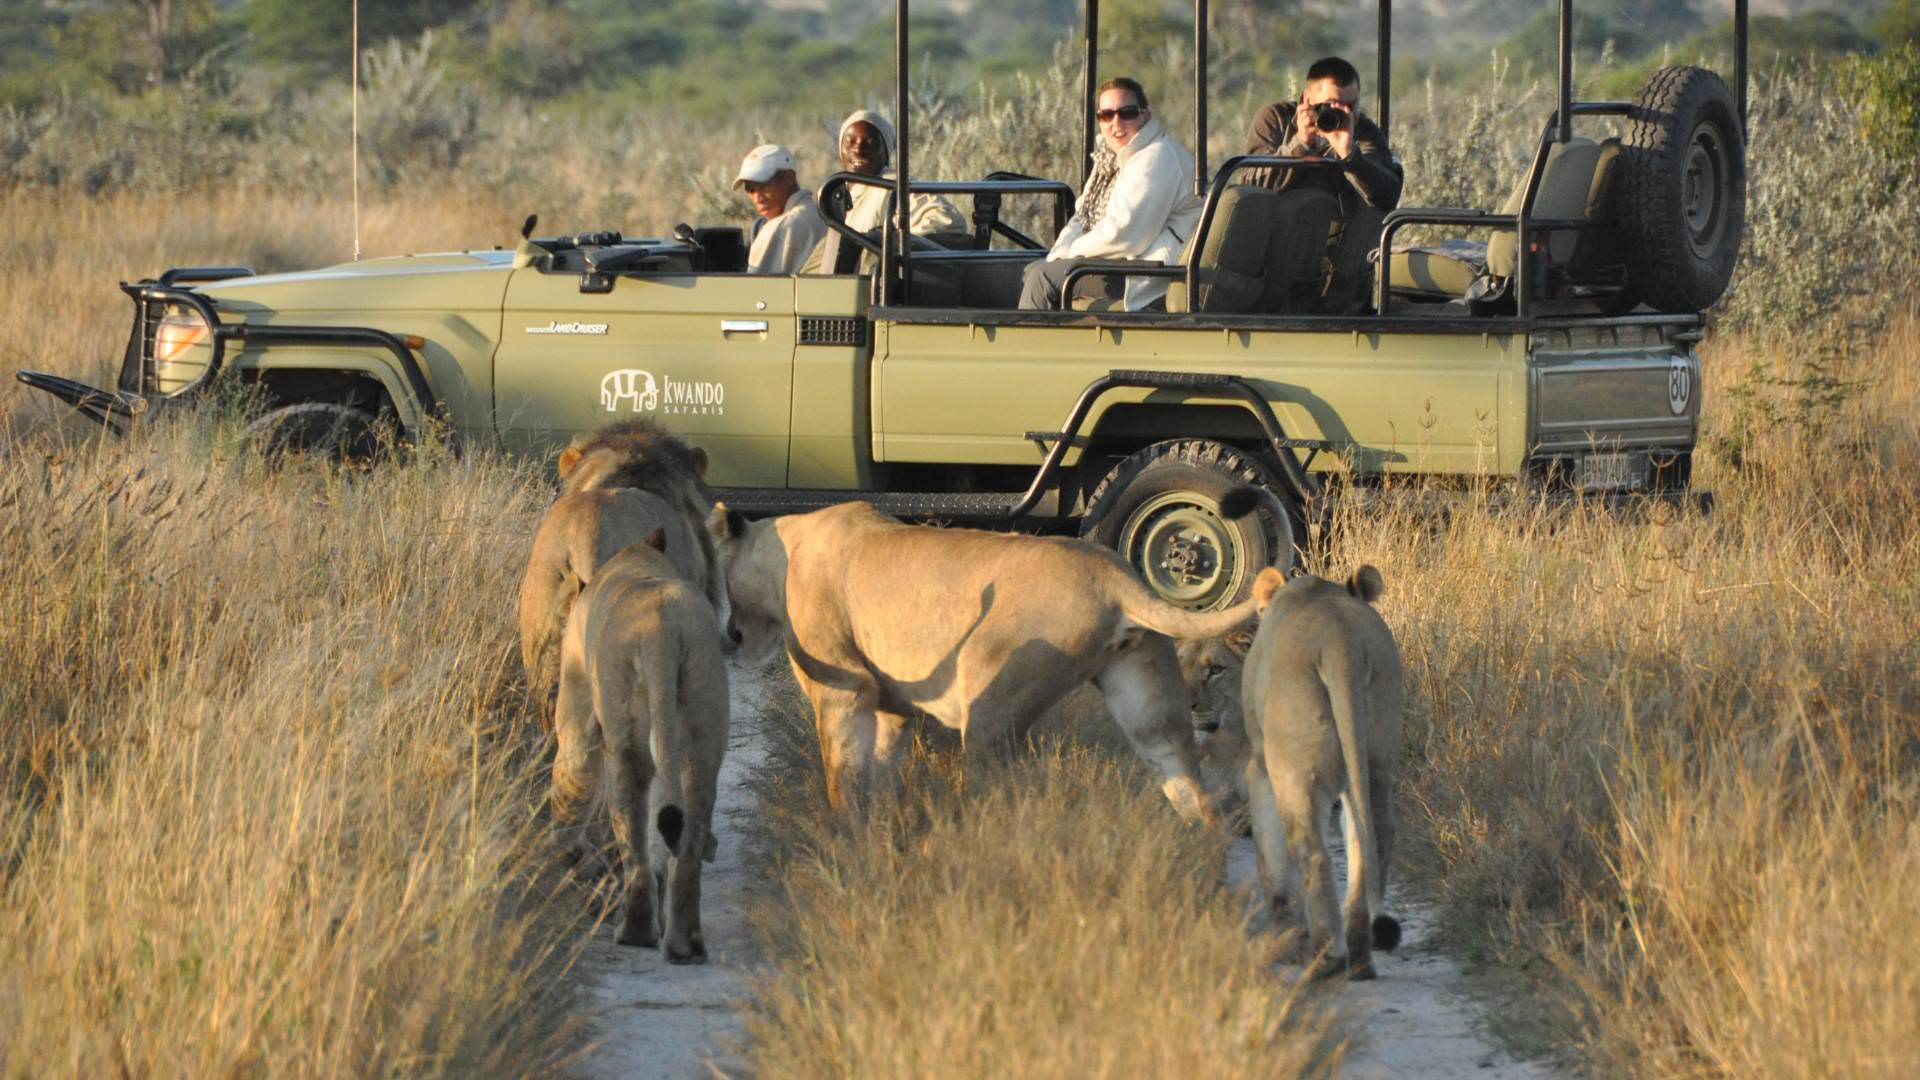 kwando-tau-pan-camp-central-kalahari-botswana